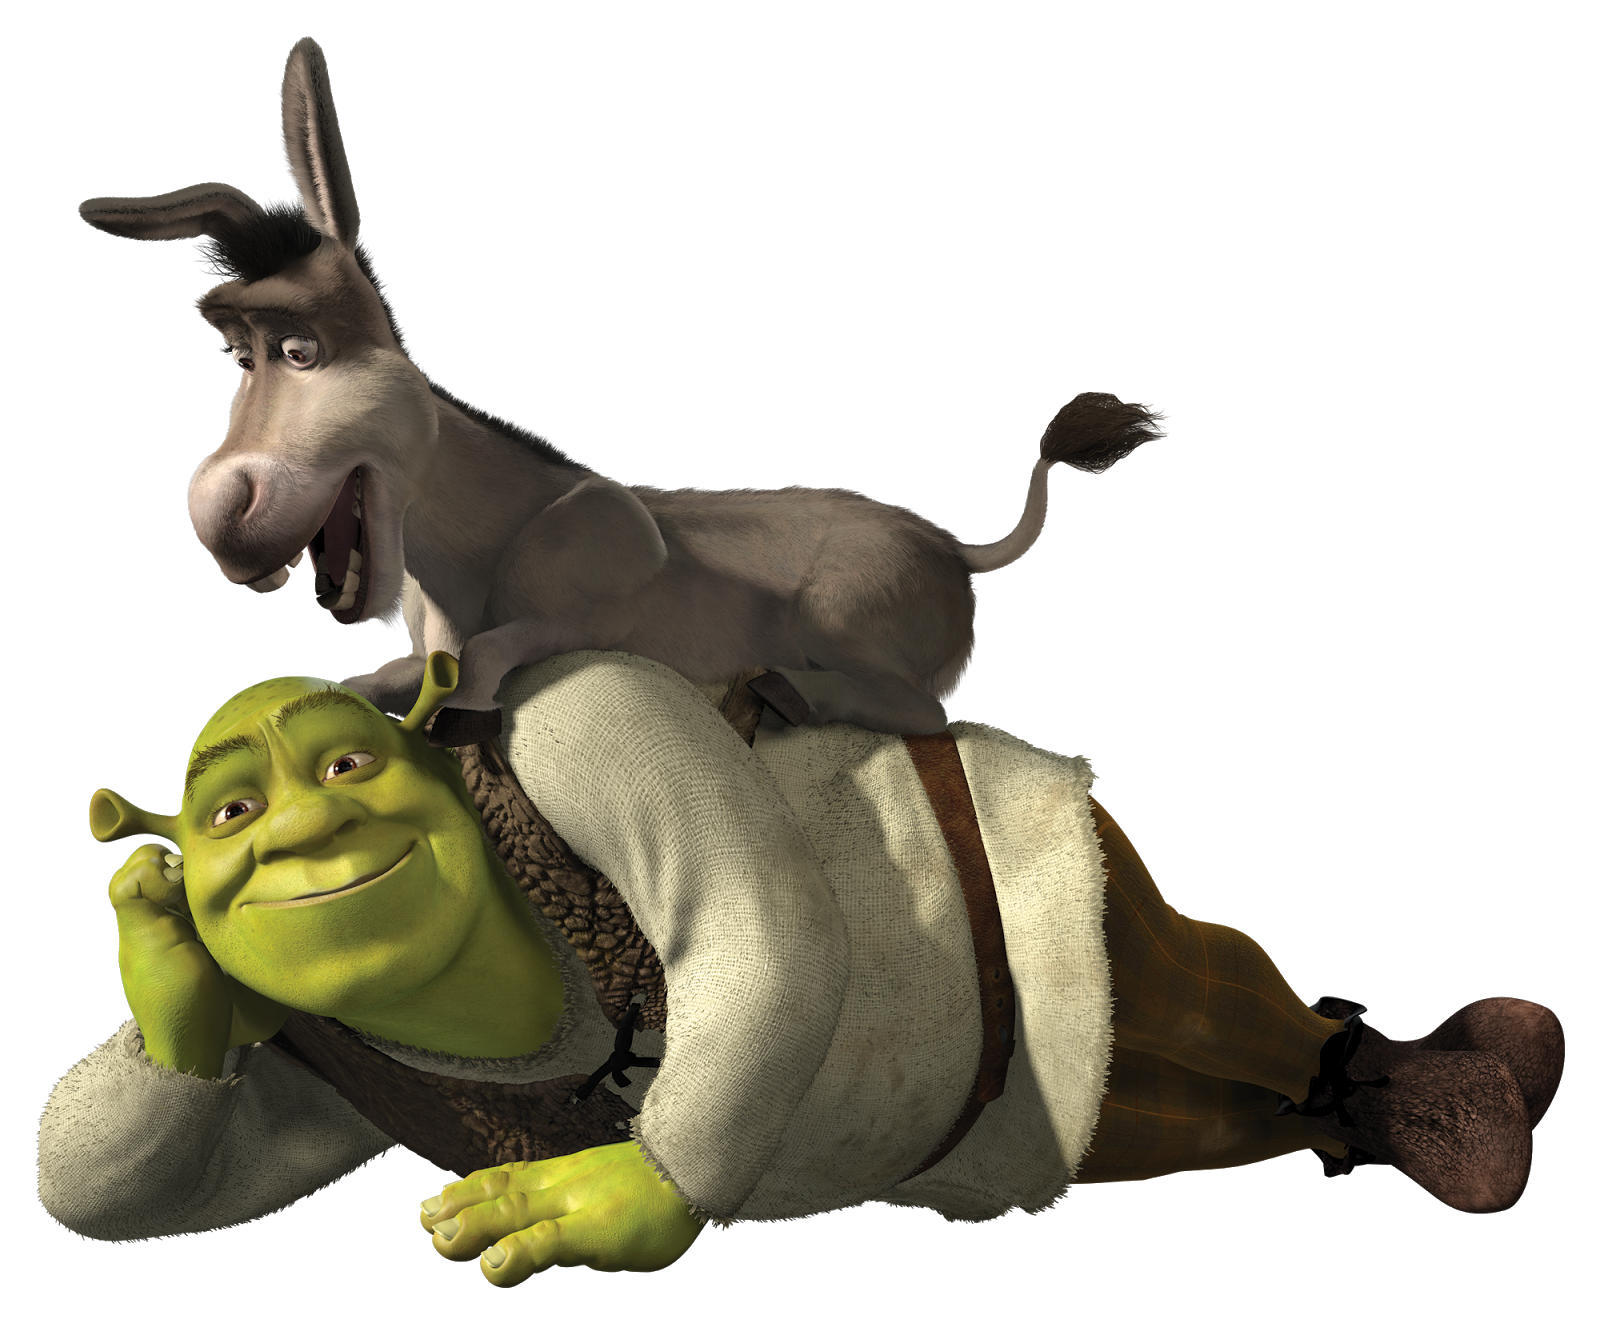 shrek and donkey png